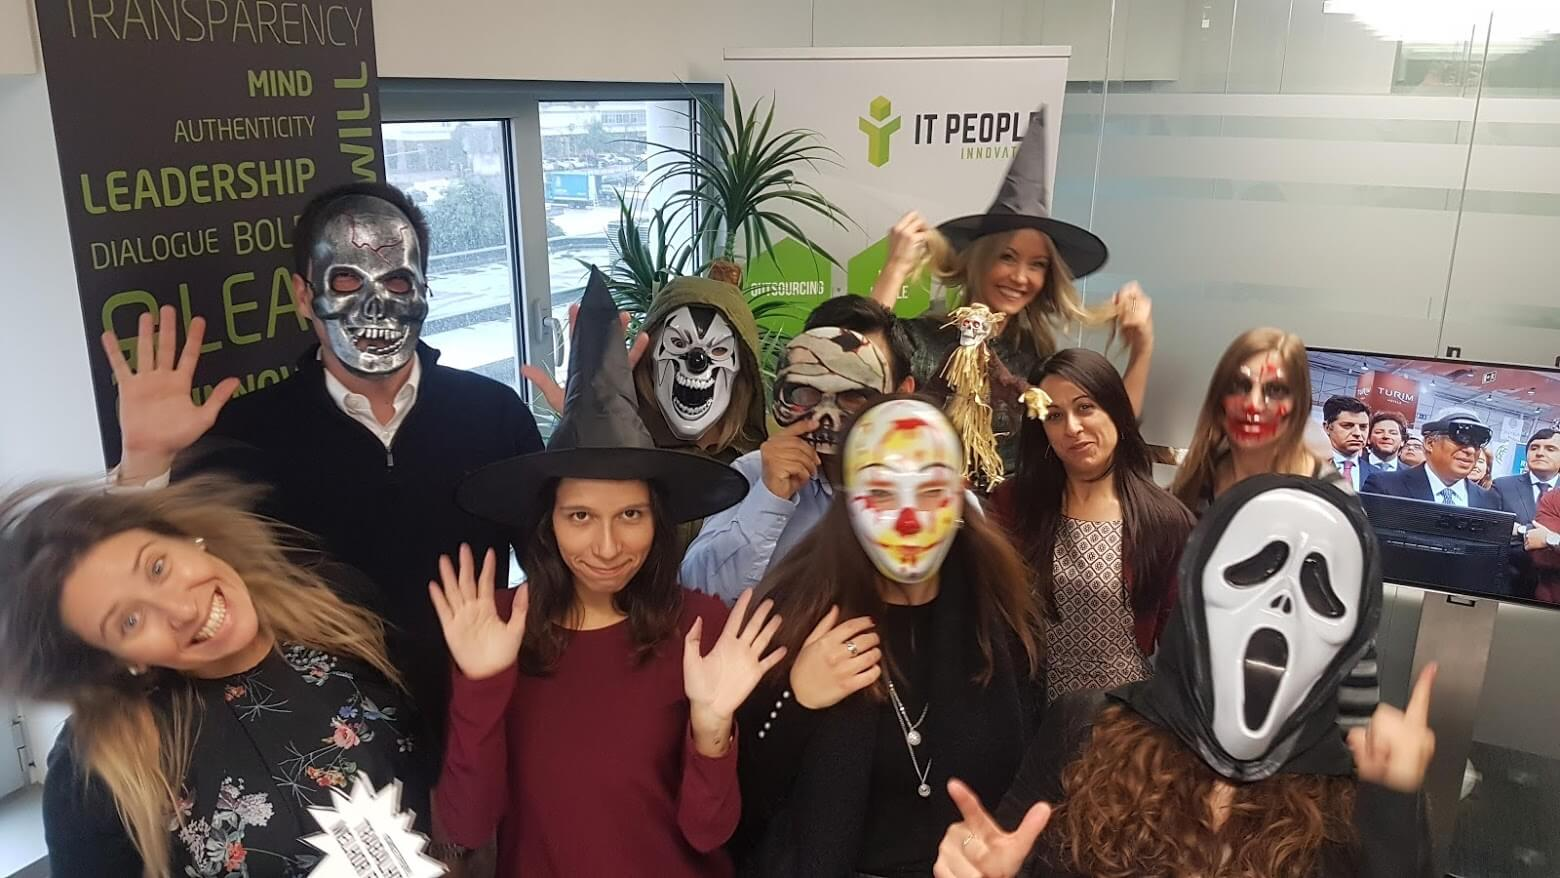 Halloween 2018 IT People Innovation